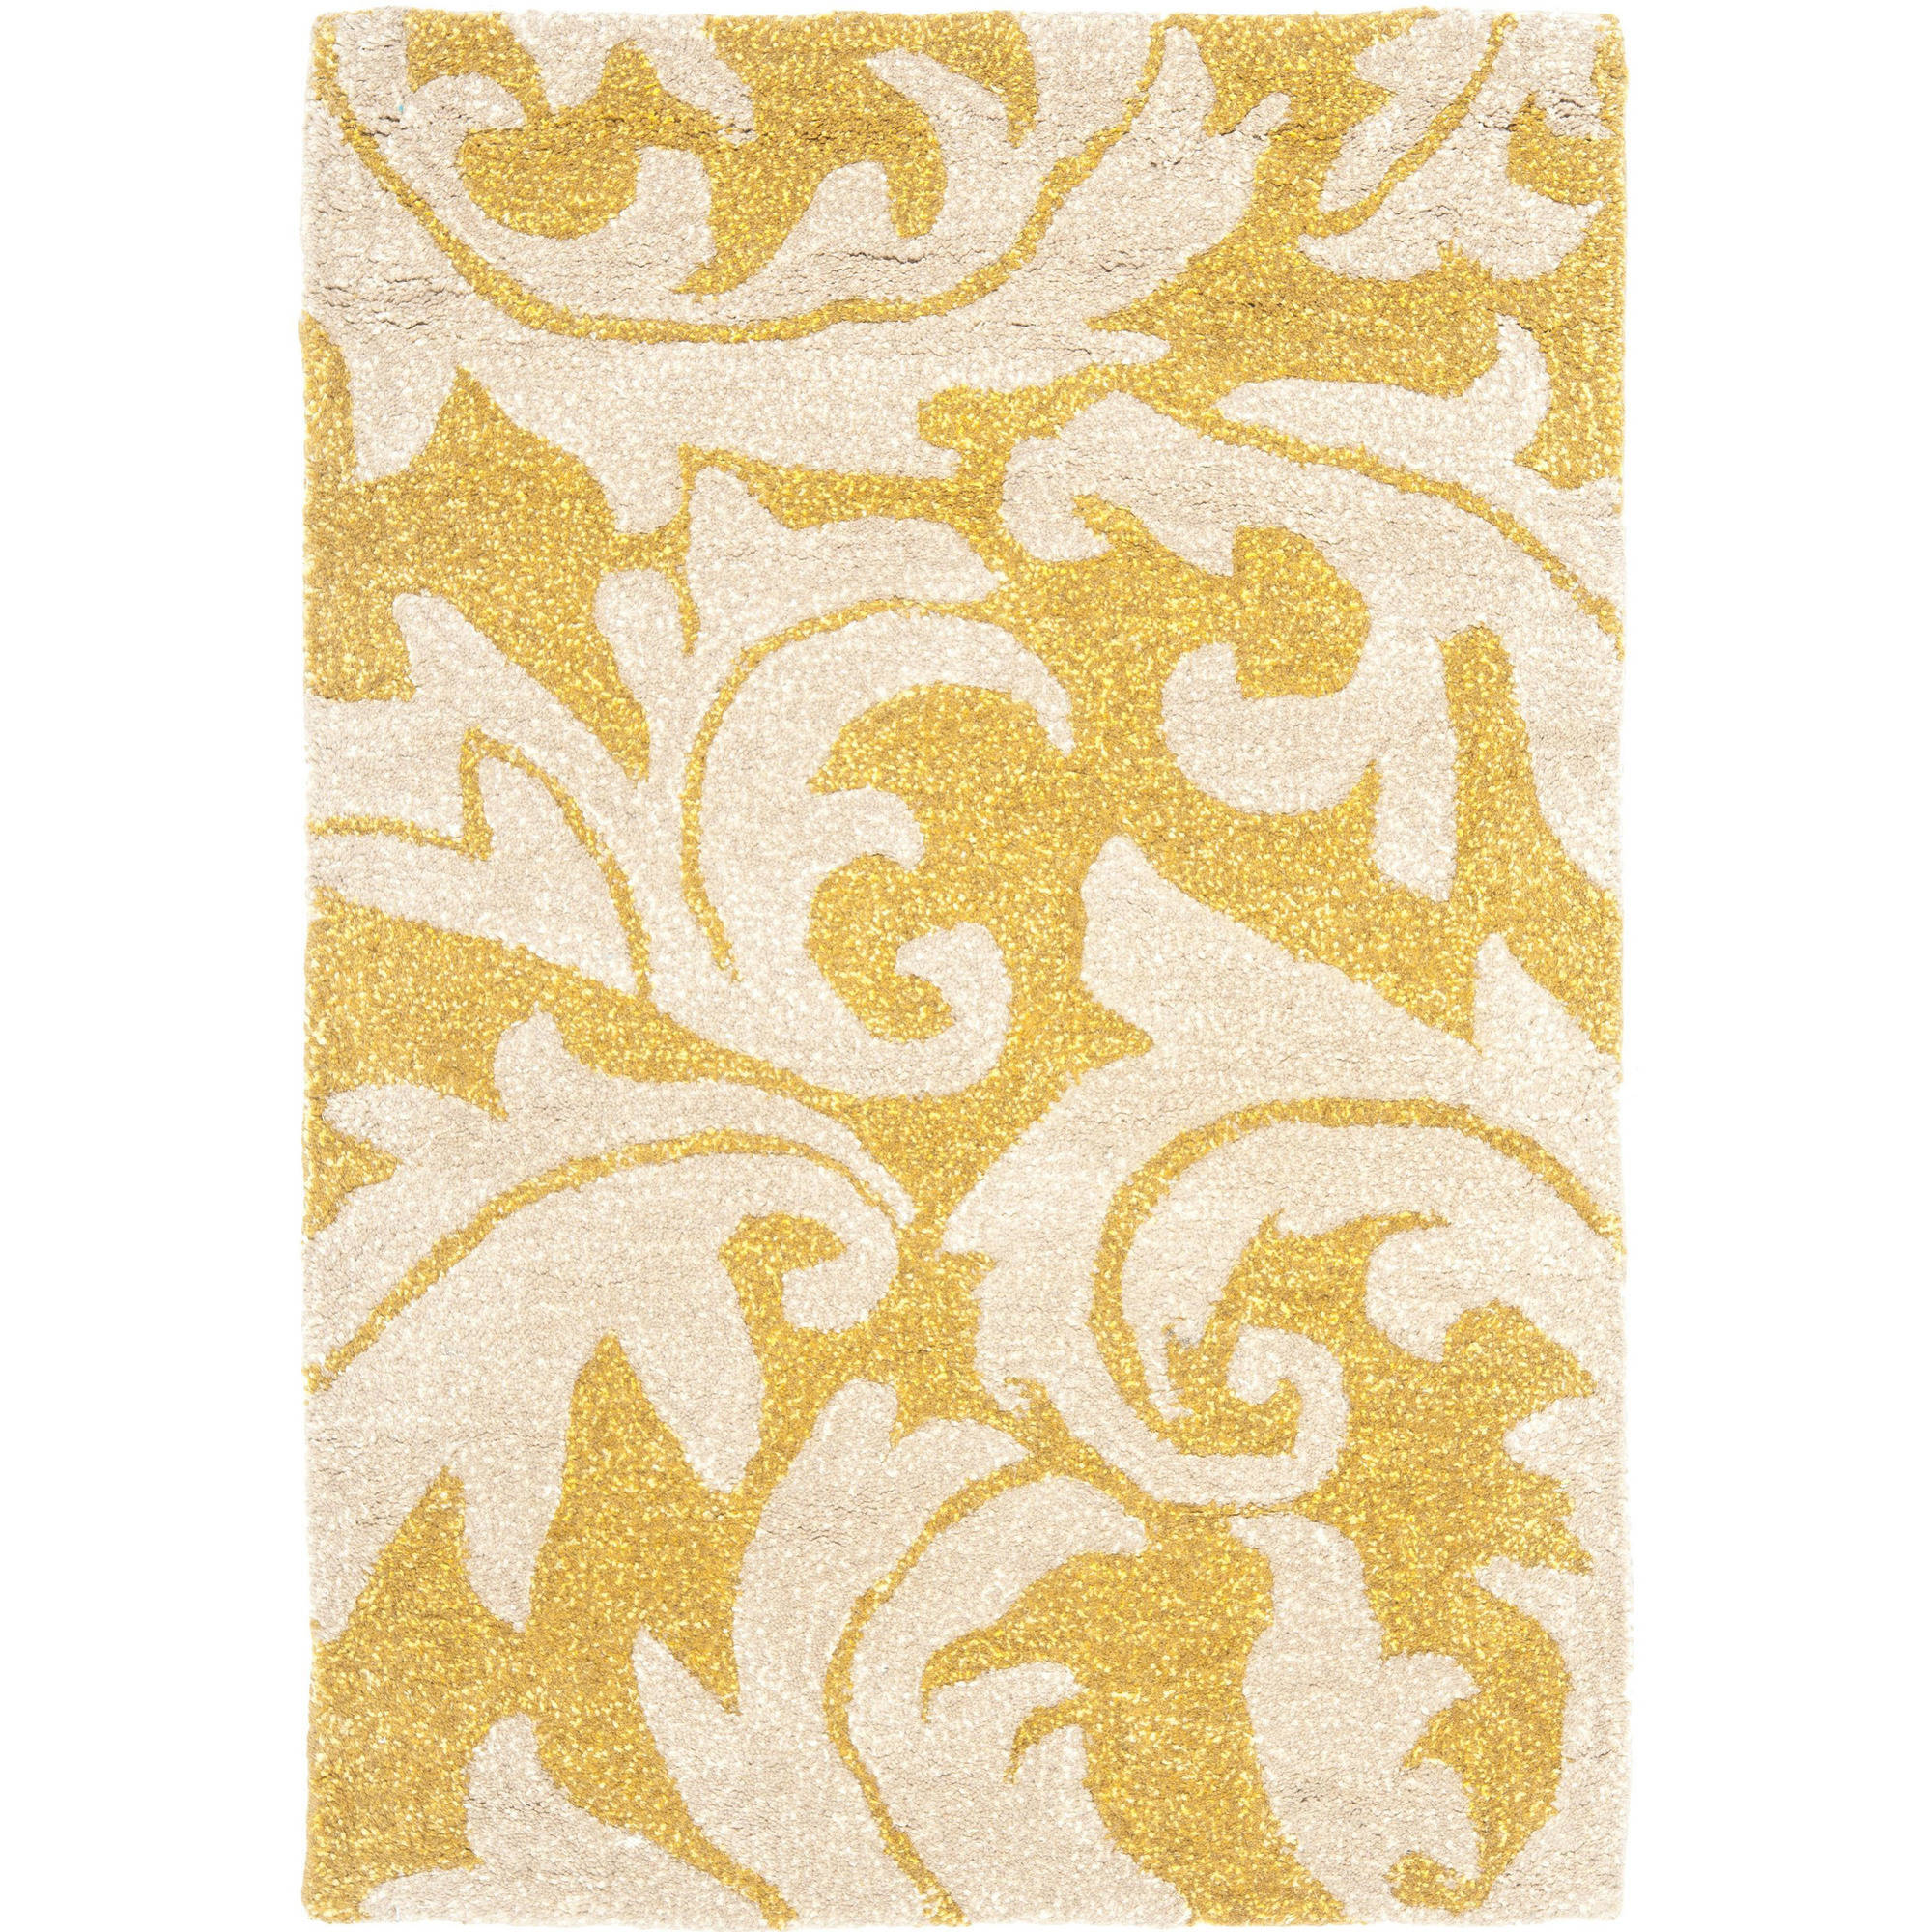 Safavieh Soho Blair Wool Area Rug, Gold/Ivory, 2x3